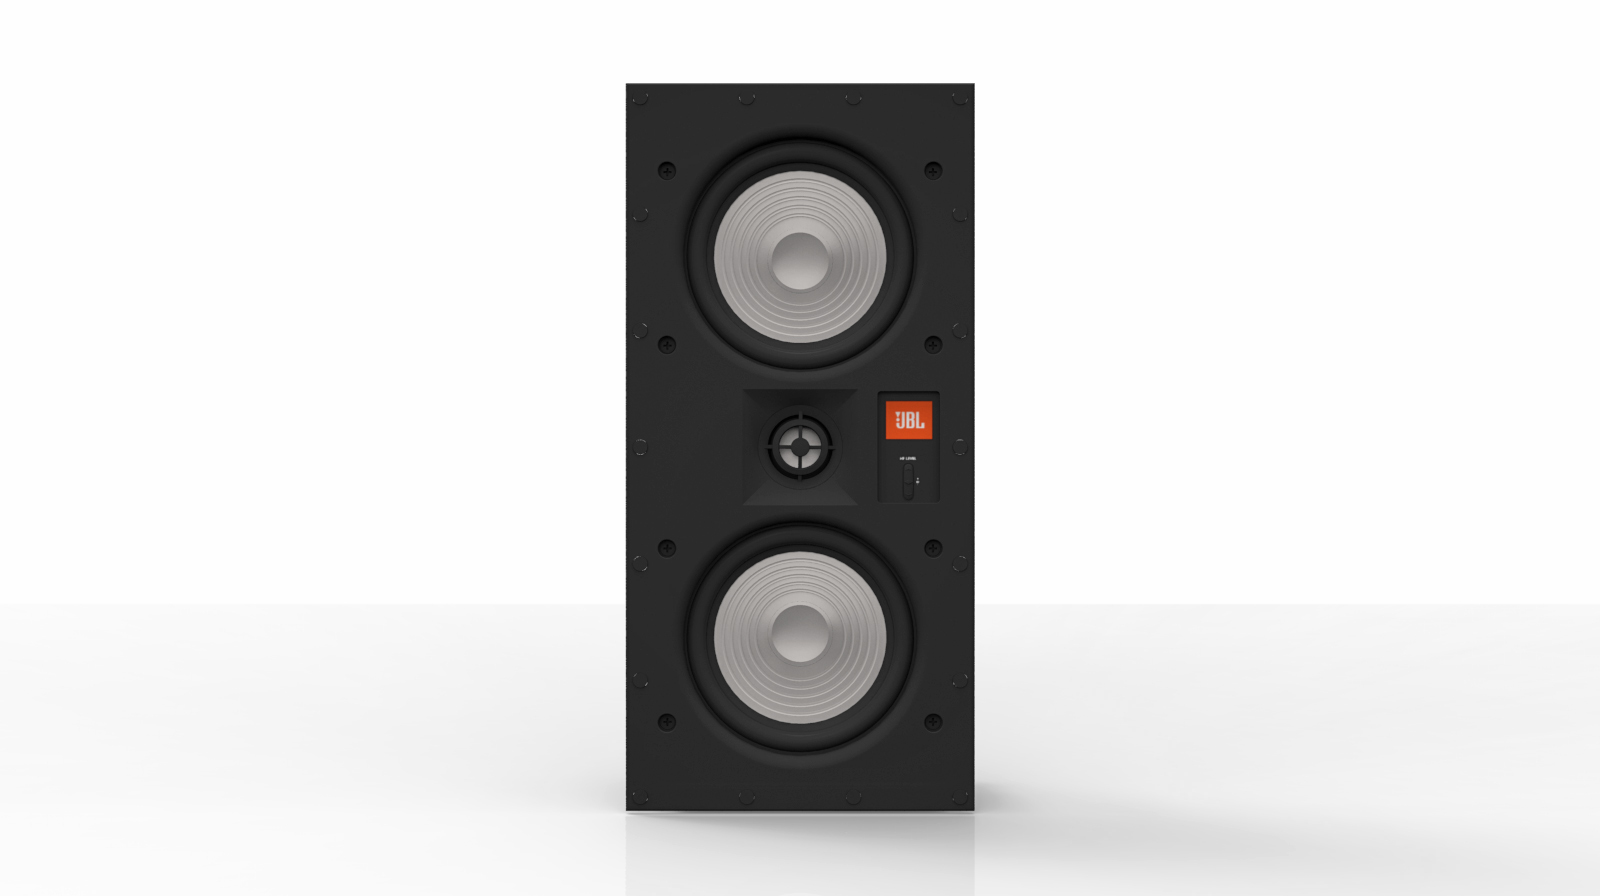 new jbl® architectural speakers fuse unmatched sound with unseen